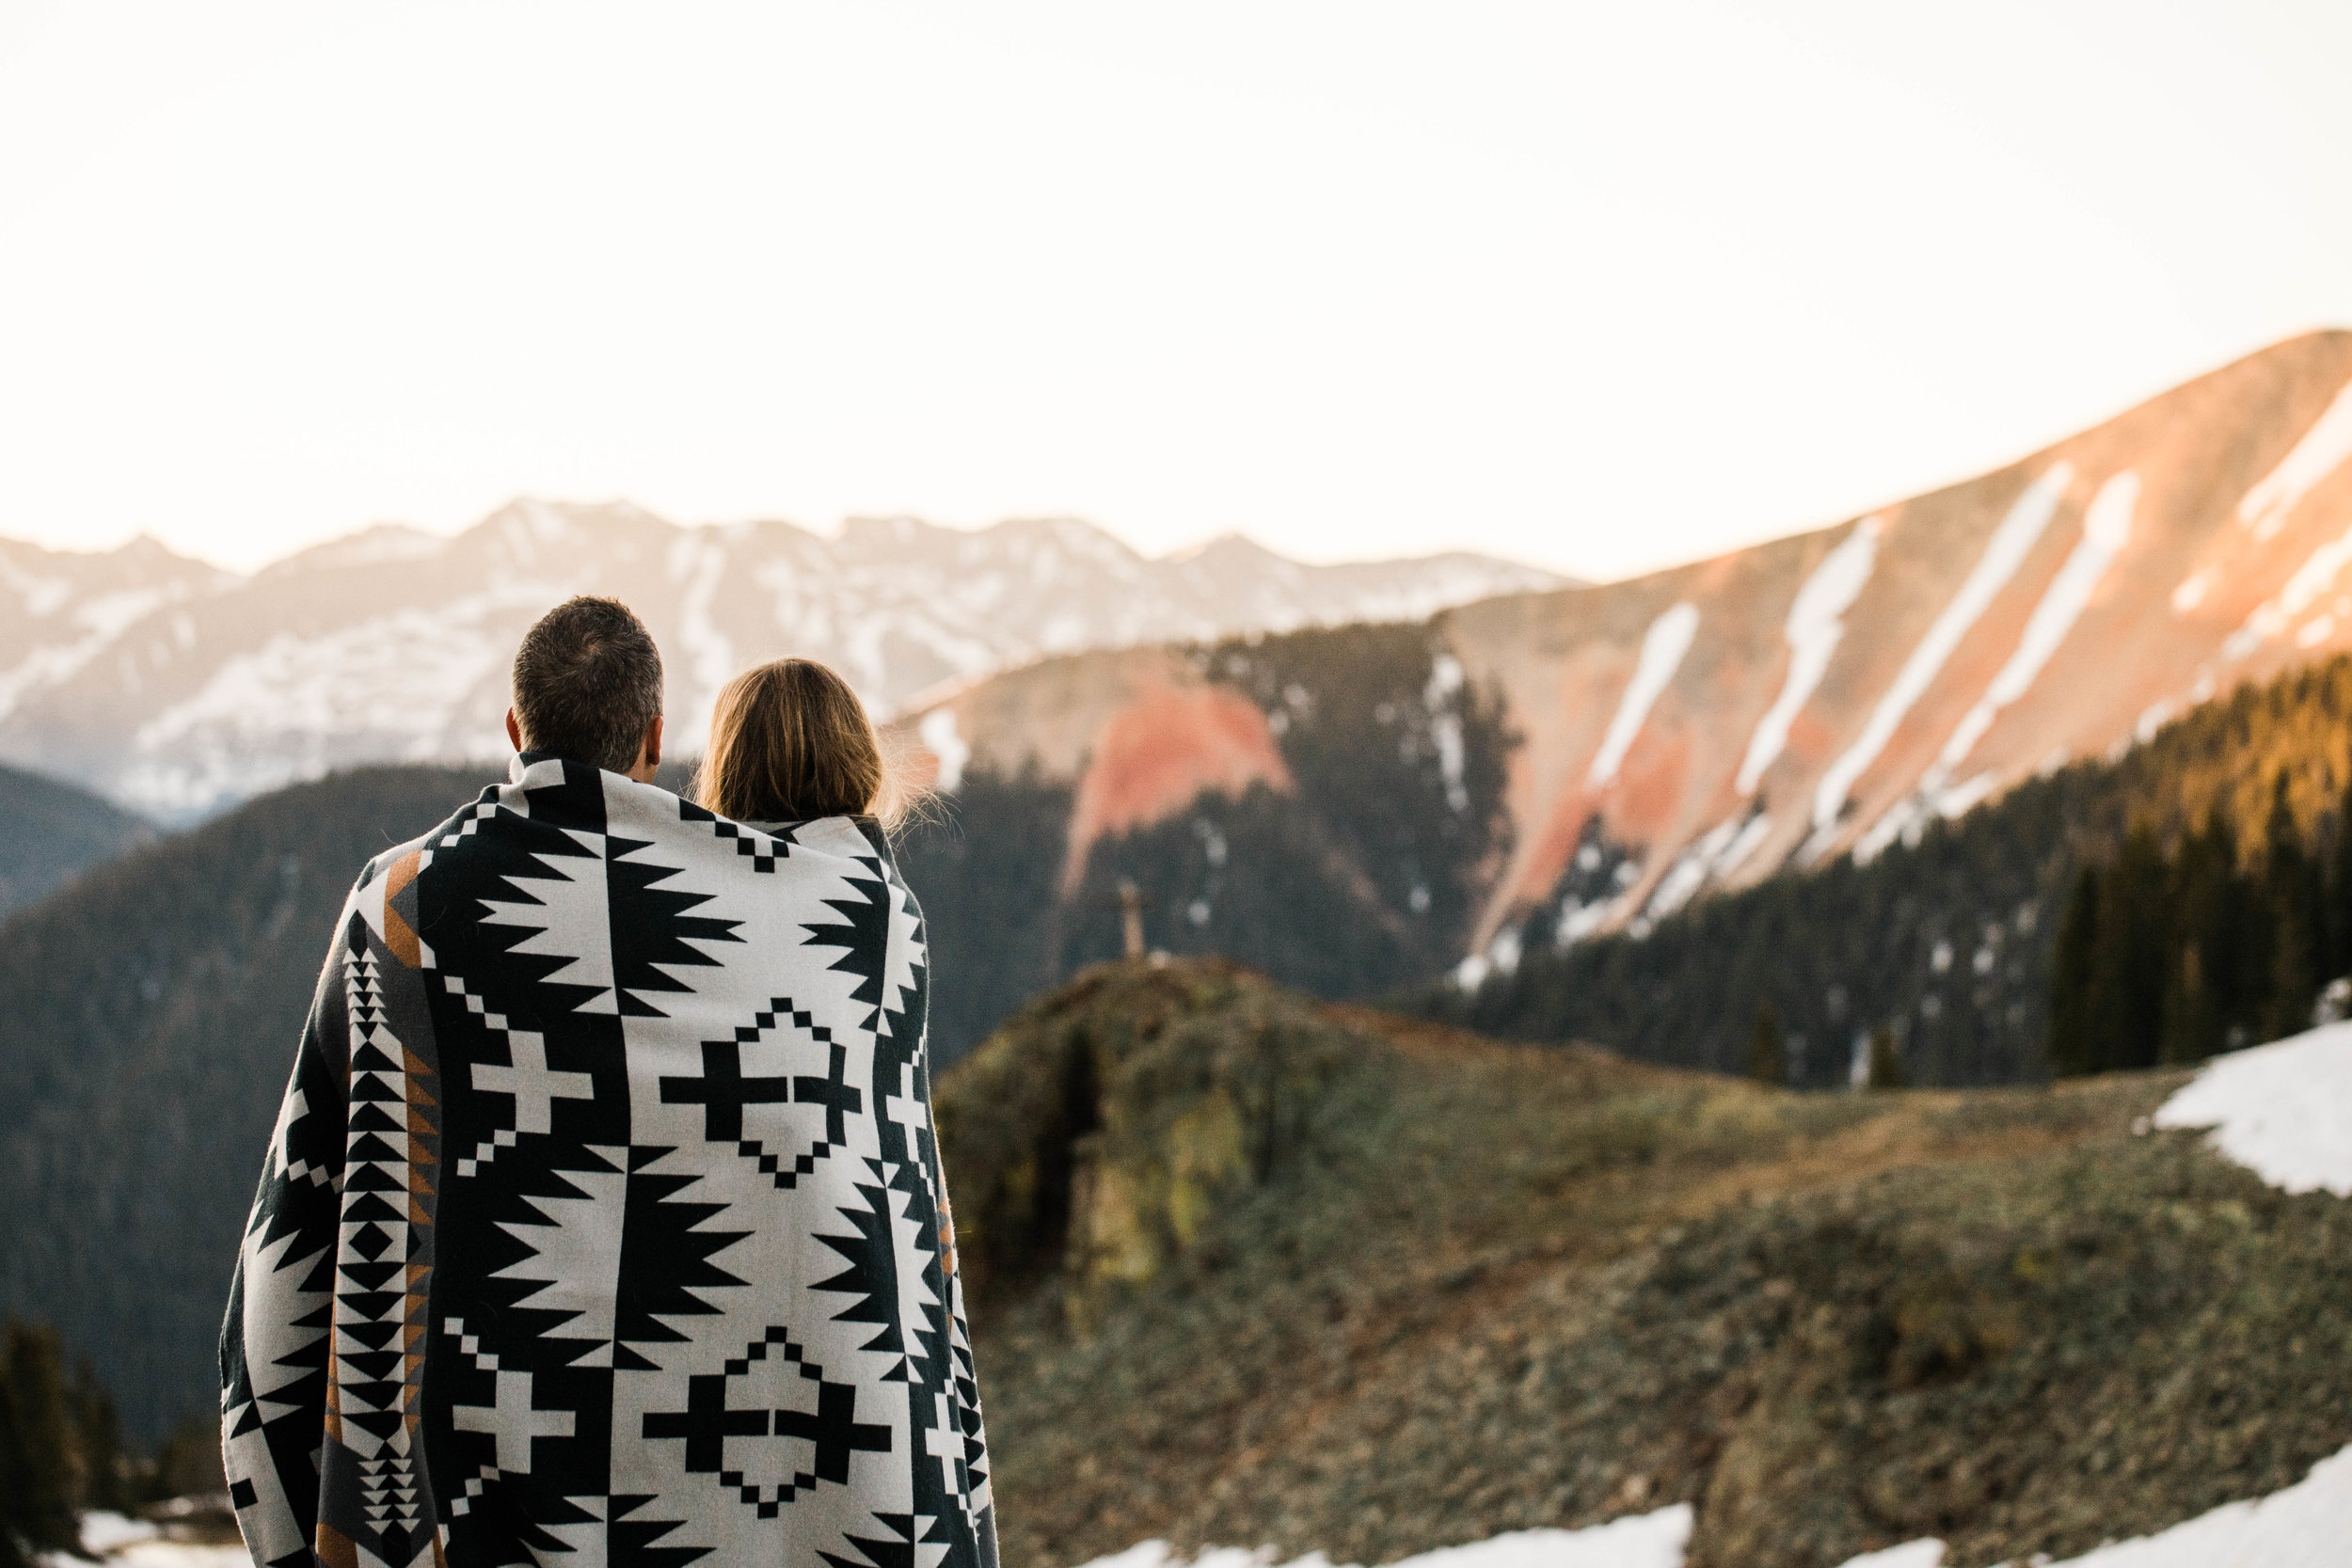 Sunrise adventure elopement in Ophir Colorado | Colorado elopement photographers in the San Juan mountains